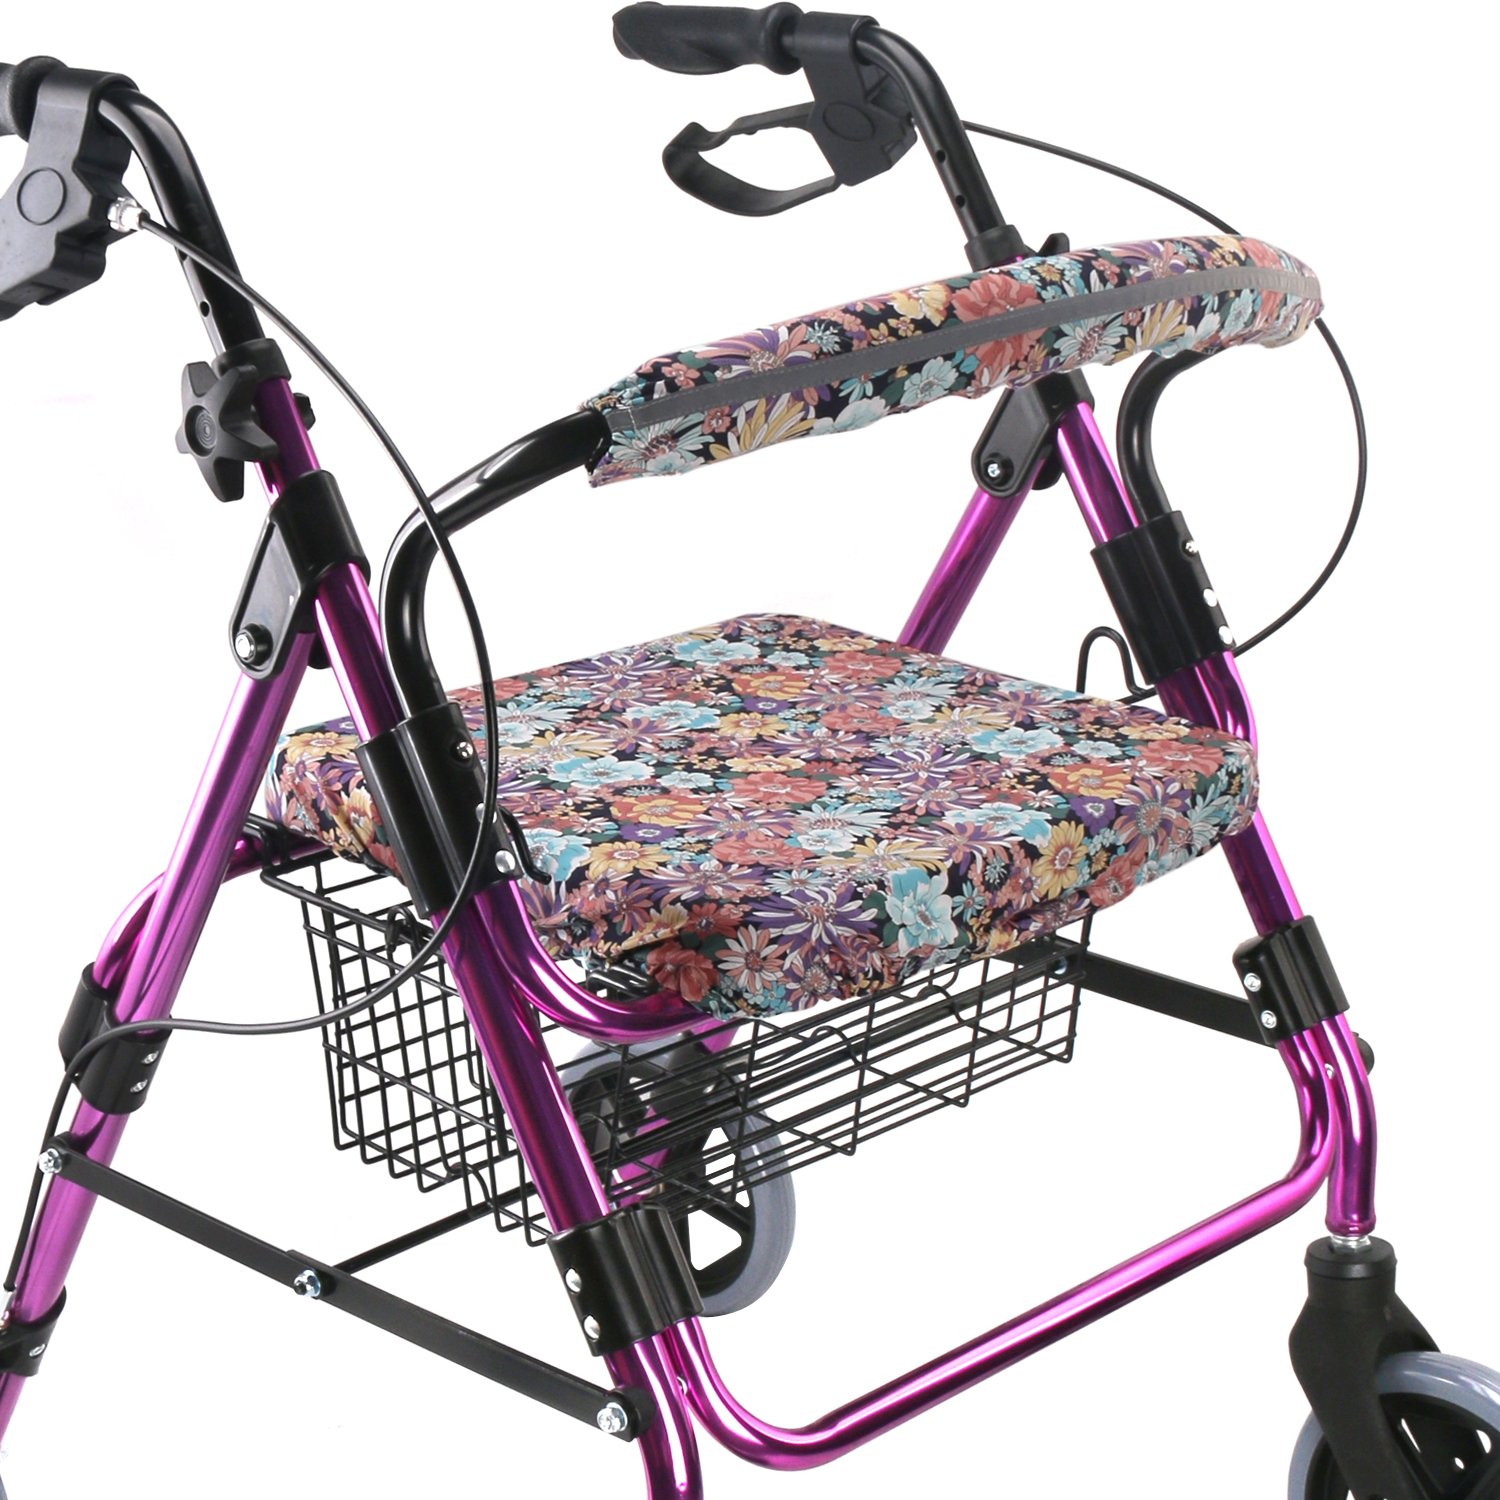 Walker Seat Cover Rollator Walker Seat and Backrest Covers Vibrant Walker Cover One Size Multiple Colors (CB1884) by TOMMHANES AMISGUOER